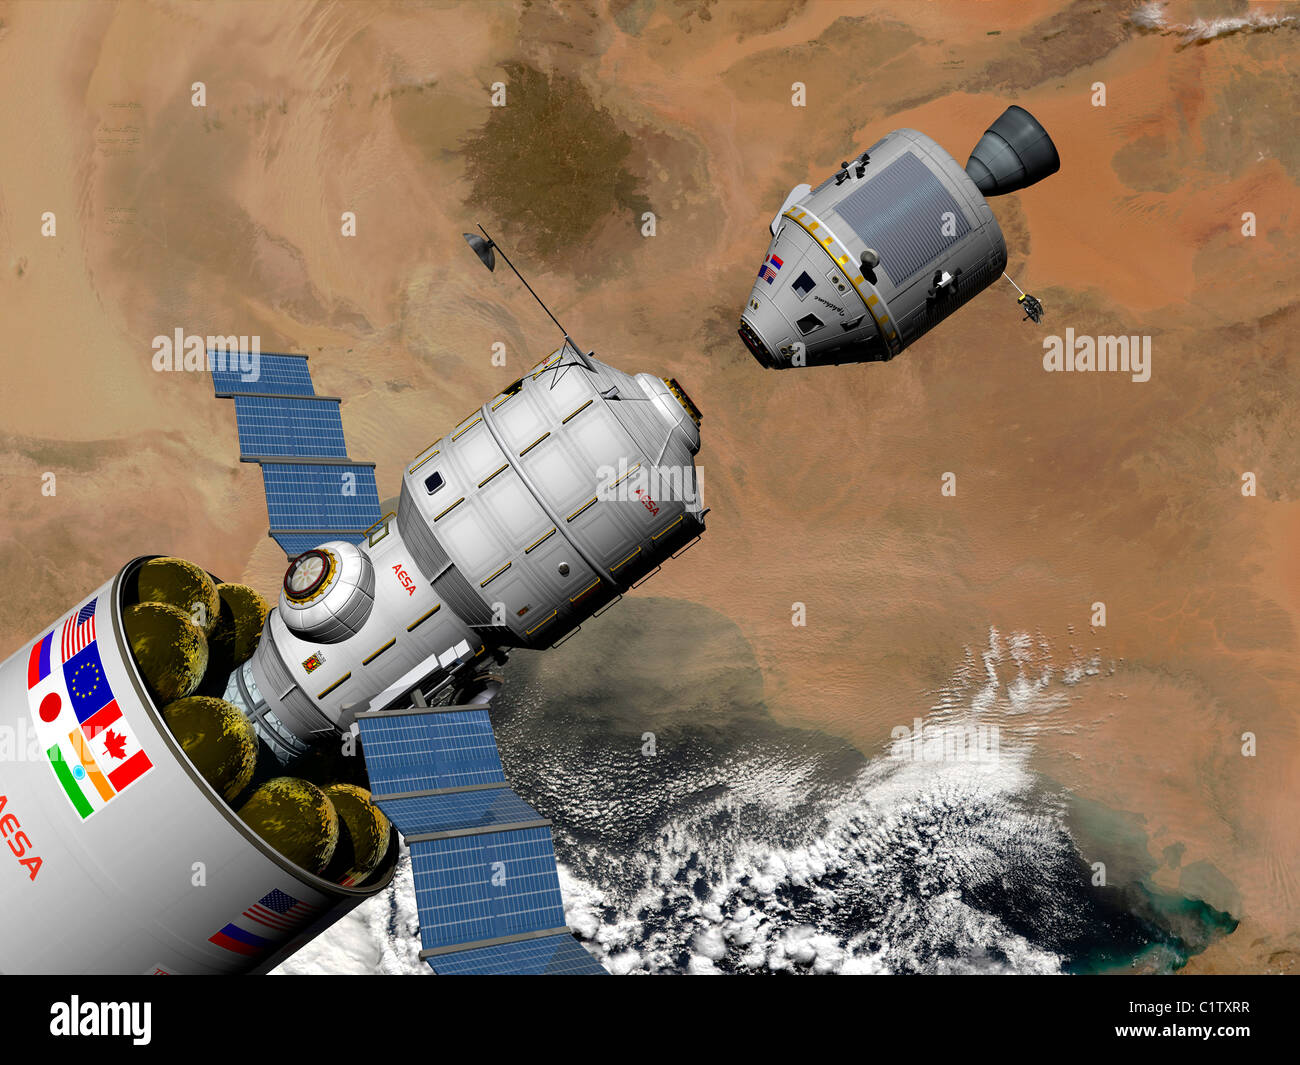 A command module prepares to dock with a Phobos mission rocket in Earth orbit. - Stock Image